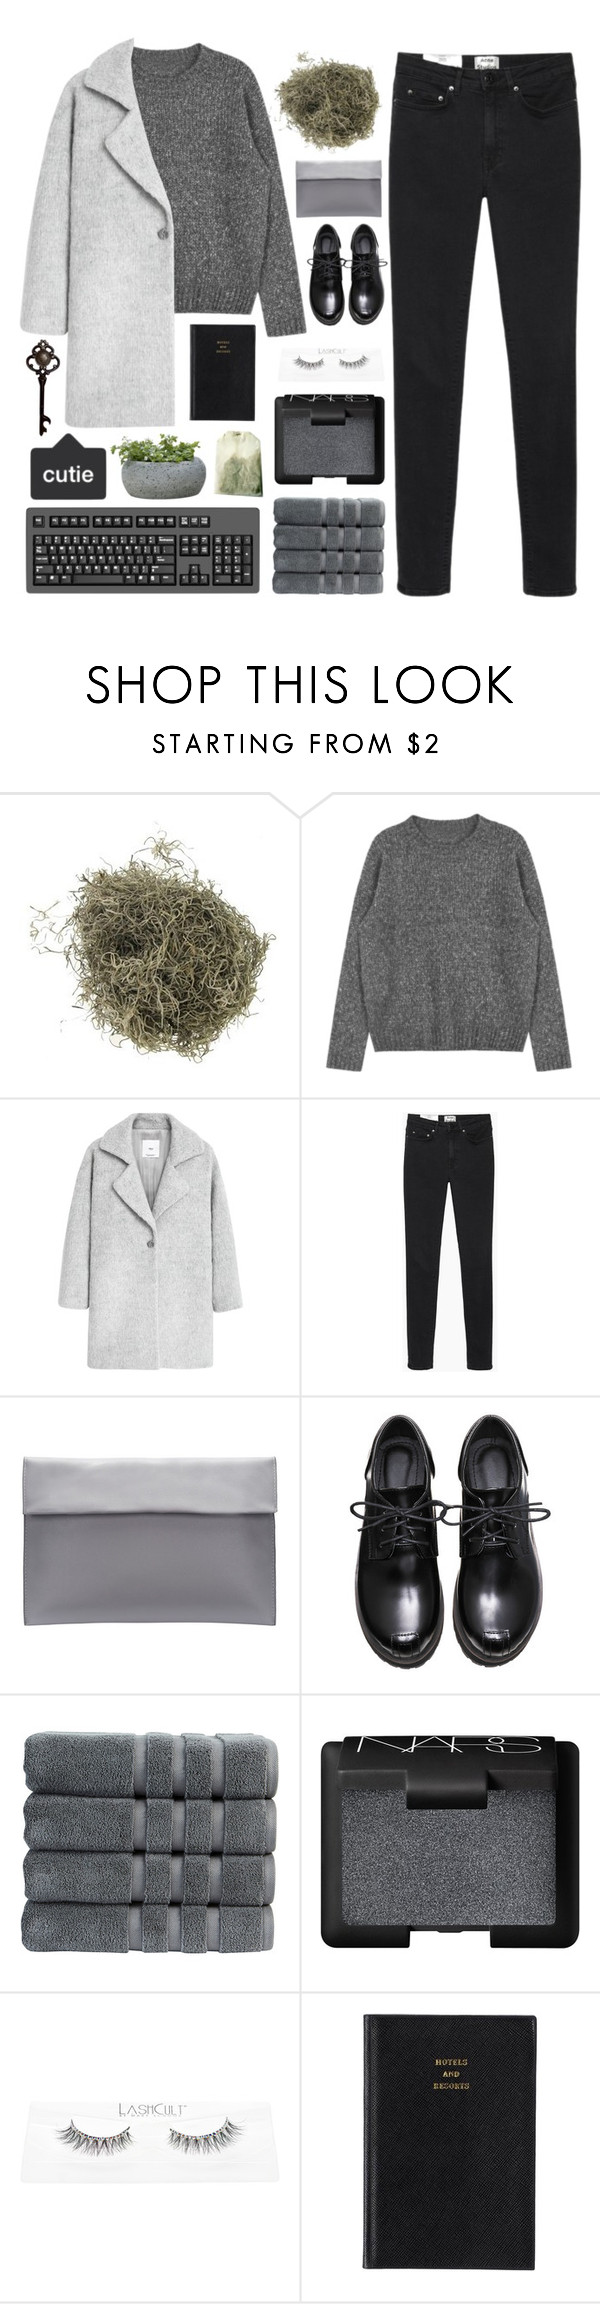 """""""dream of californication"""" by dr0ps-of-jup1ter ❤ liked on Polyvore featuring MANGO, Acne Studios, Christy, NARS Cosmetics, Prada and Campania International"""